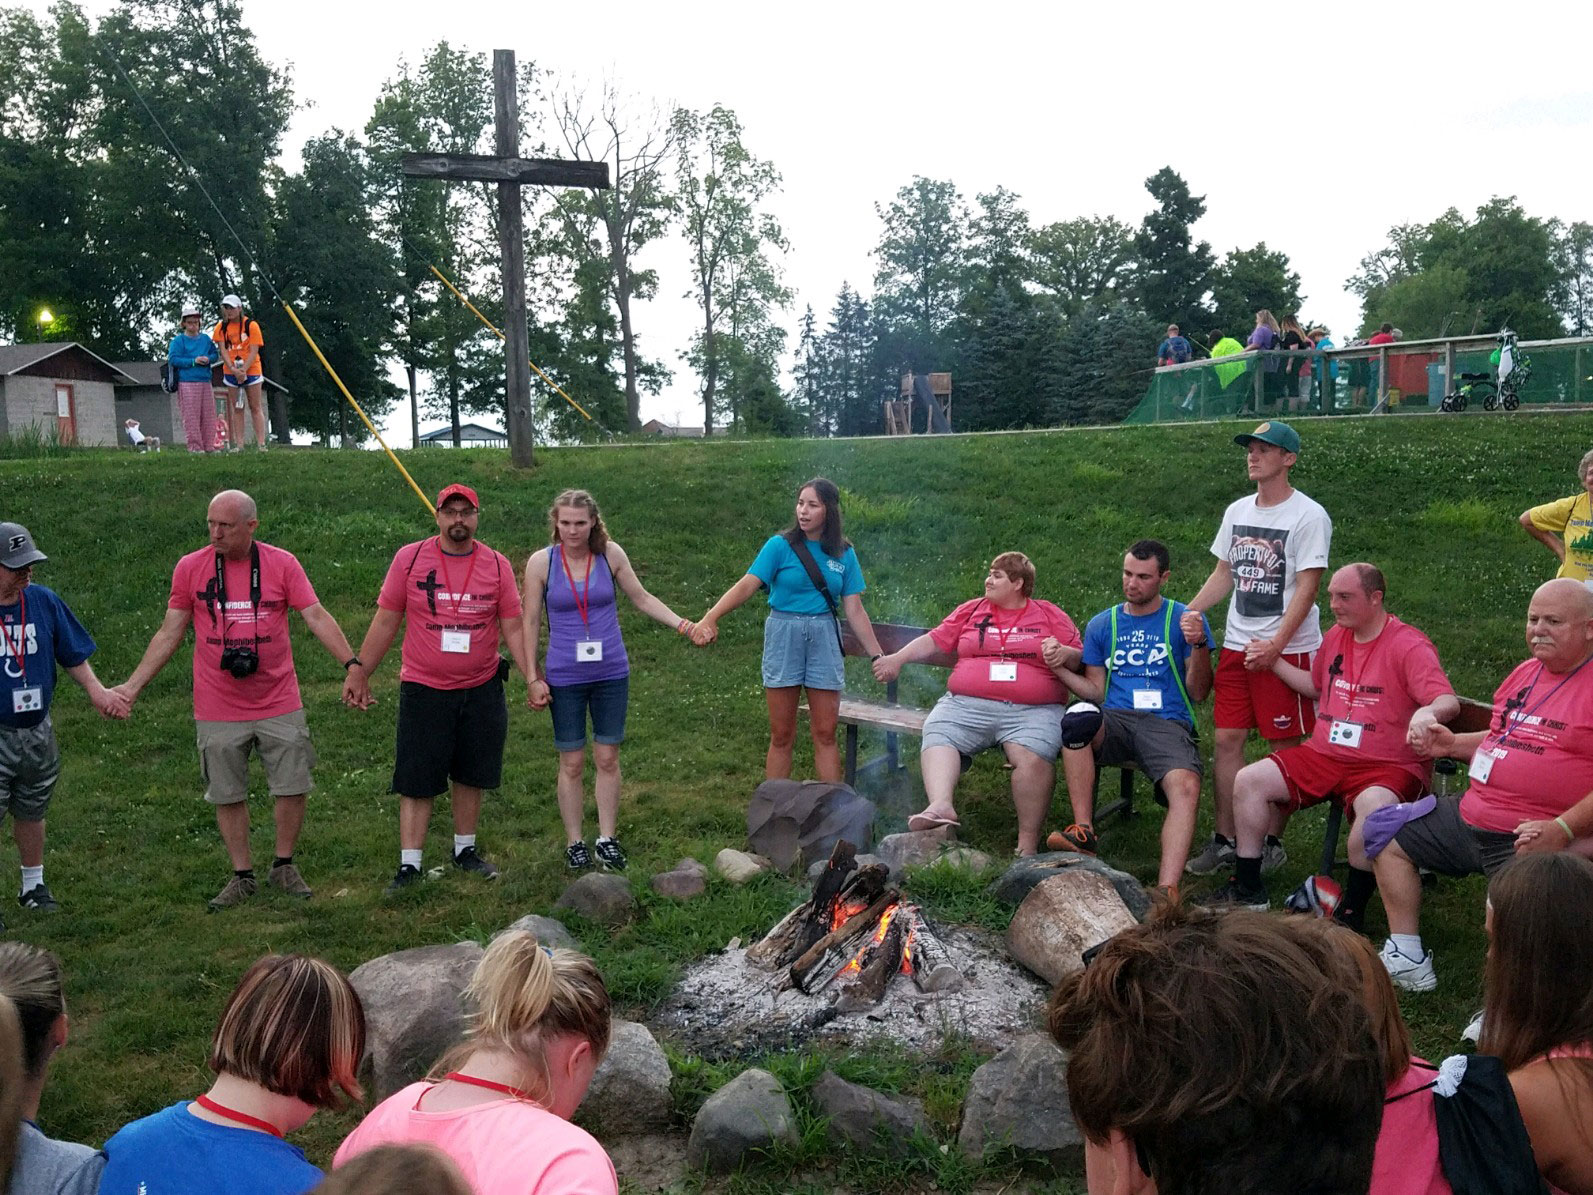 Special-Needs-Camp-HS-Mission-Trip-2019-1_PlainfieldChristianChurch_Indiana.jpg